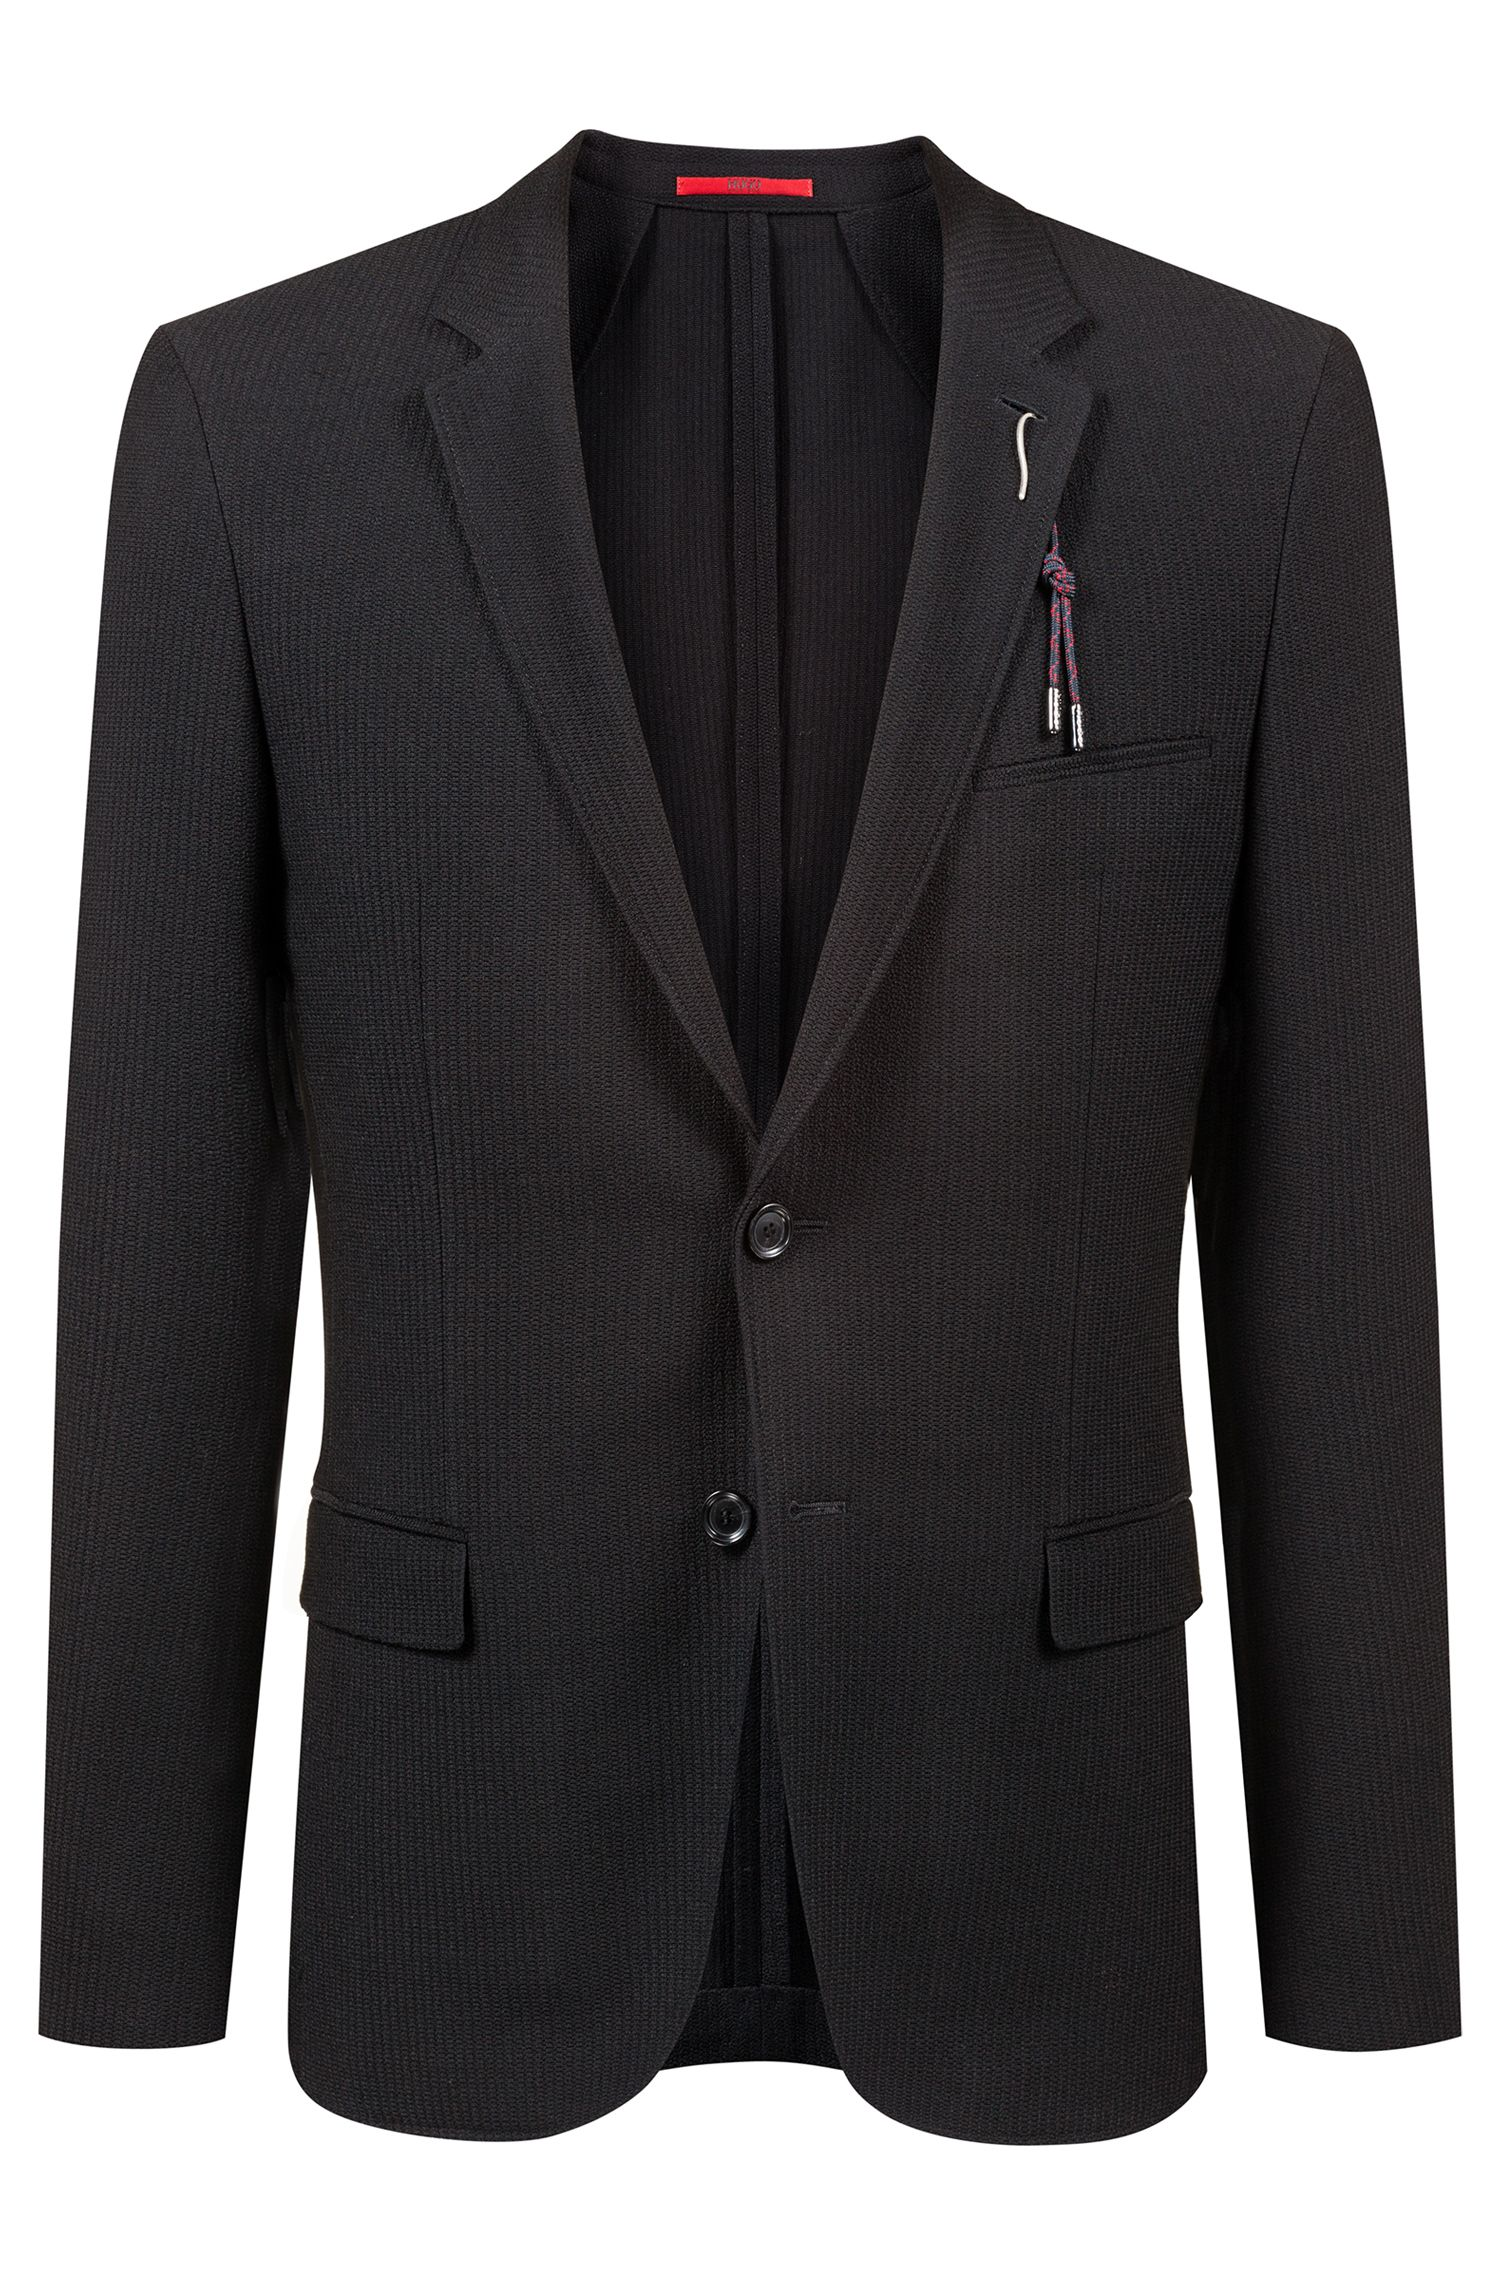 Extra-slim-fit wool-blend jacket with removable embellishment, Black